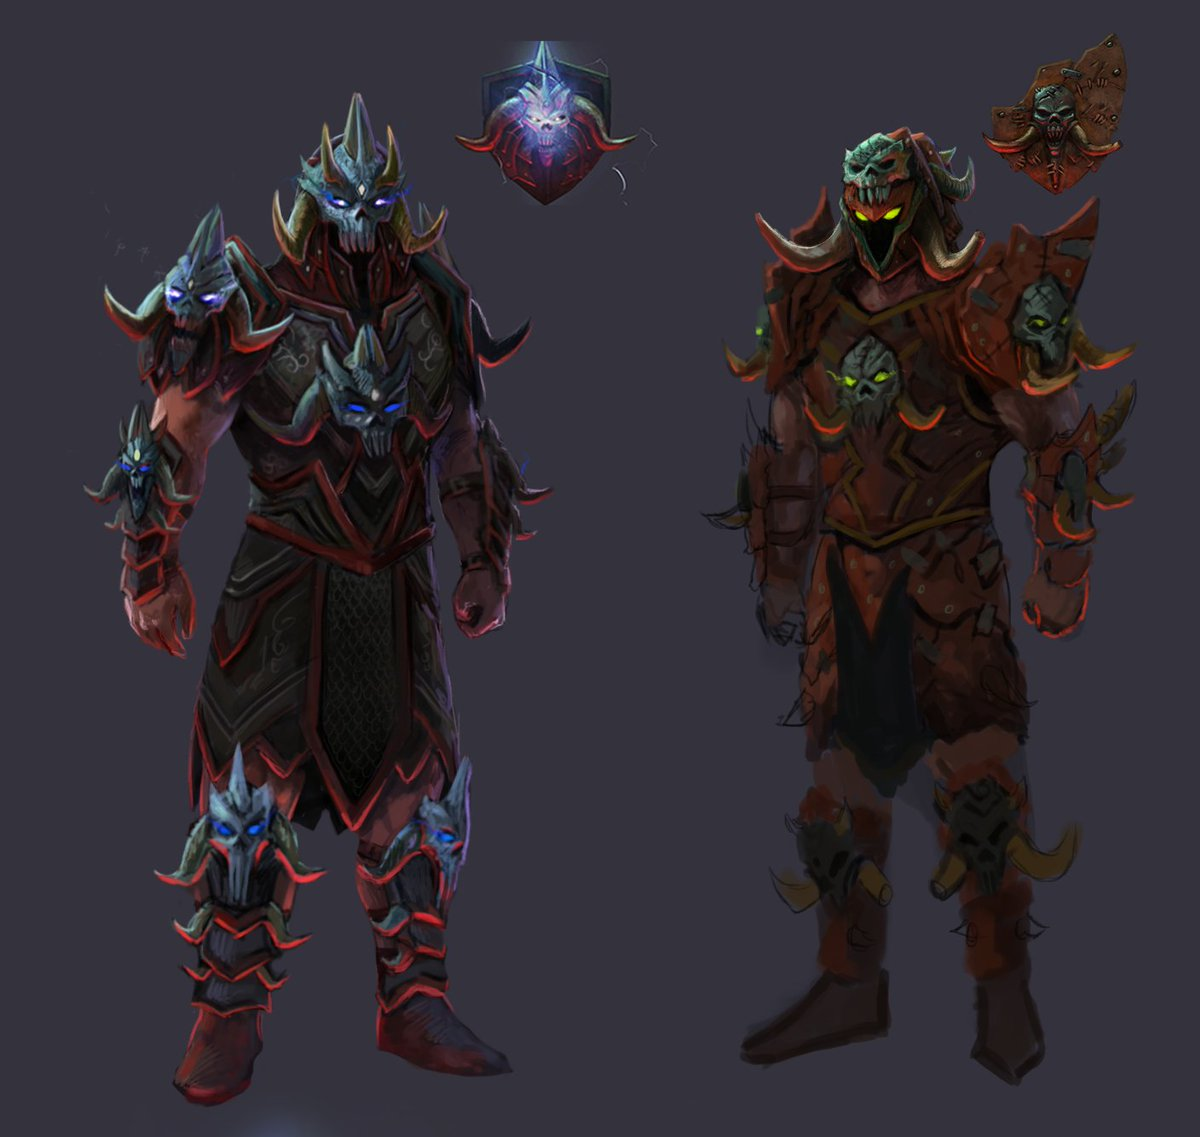 Runescape Demon Armour Wwwmiifotoscom